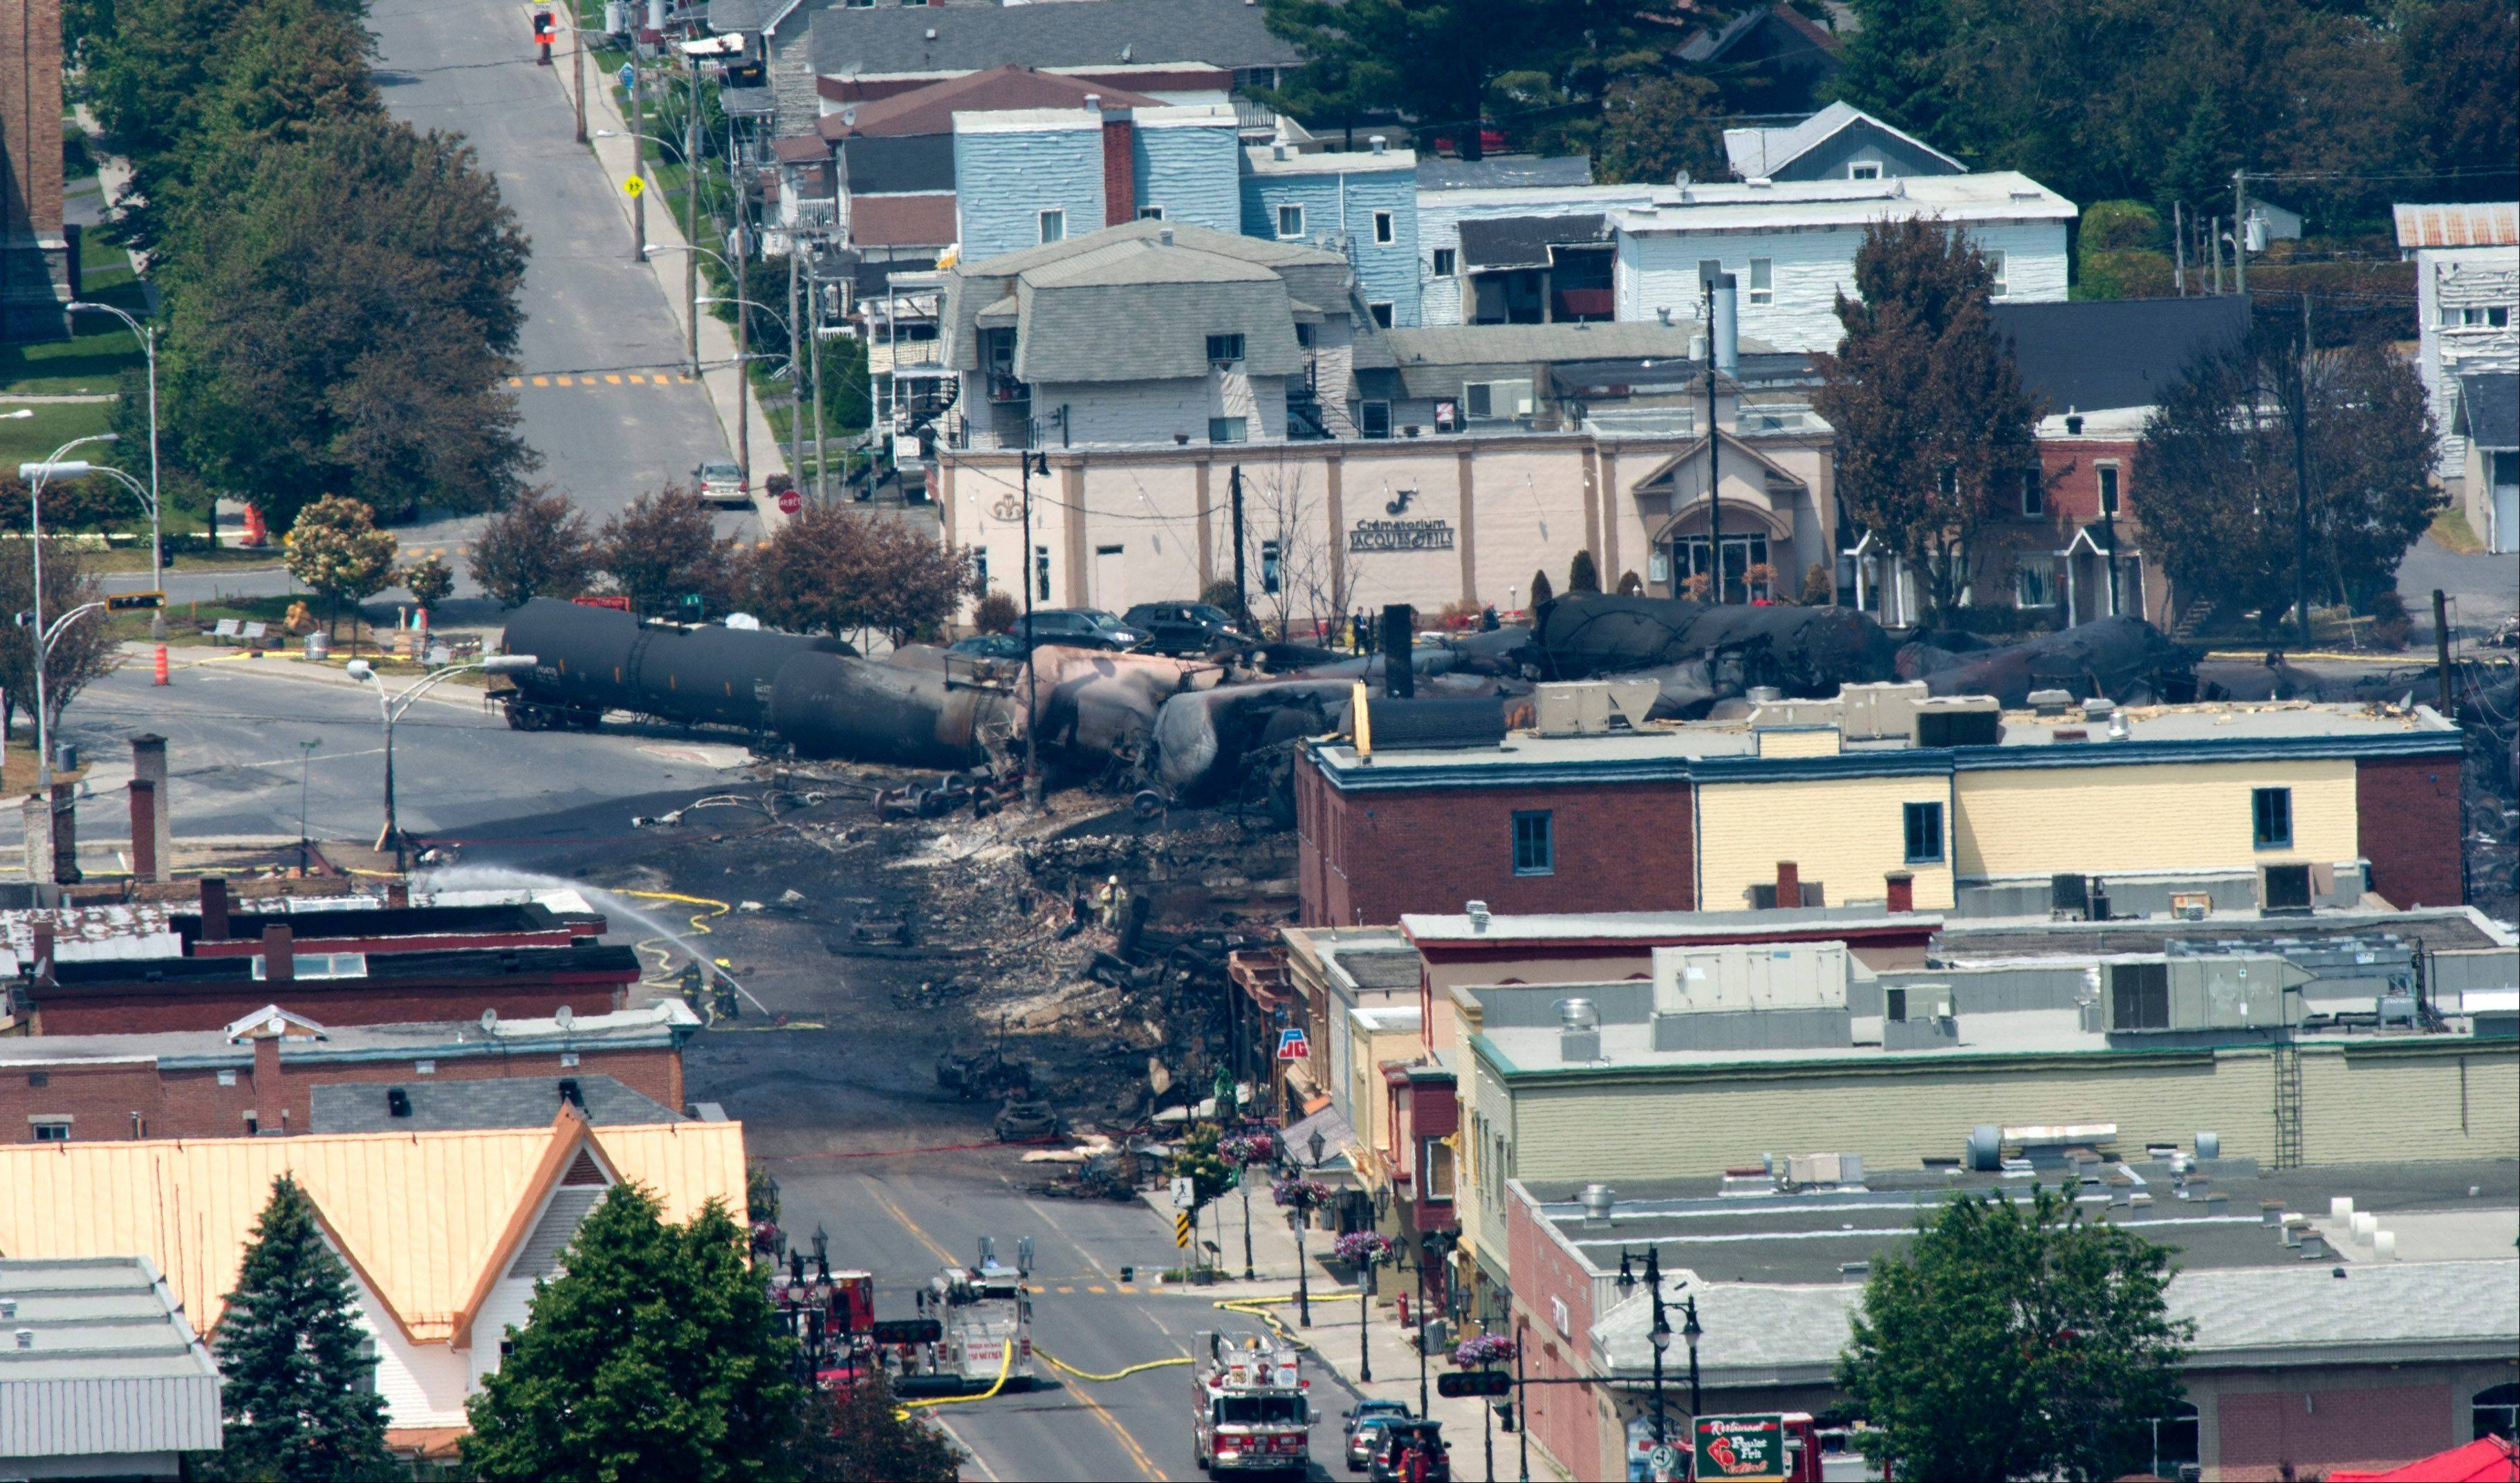 Hazardous conditions hindered firefighters' attempts Monday to search for some 40 people still missing in downtown Lac Megantic, Quebec, after a runaway oil tanker train exploded over the weekend, killing at least five people, officials said.